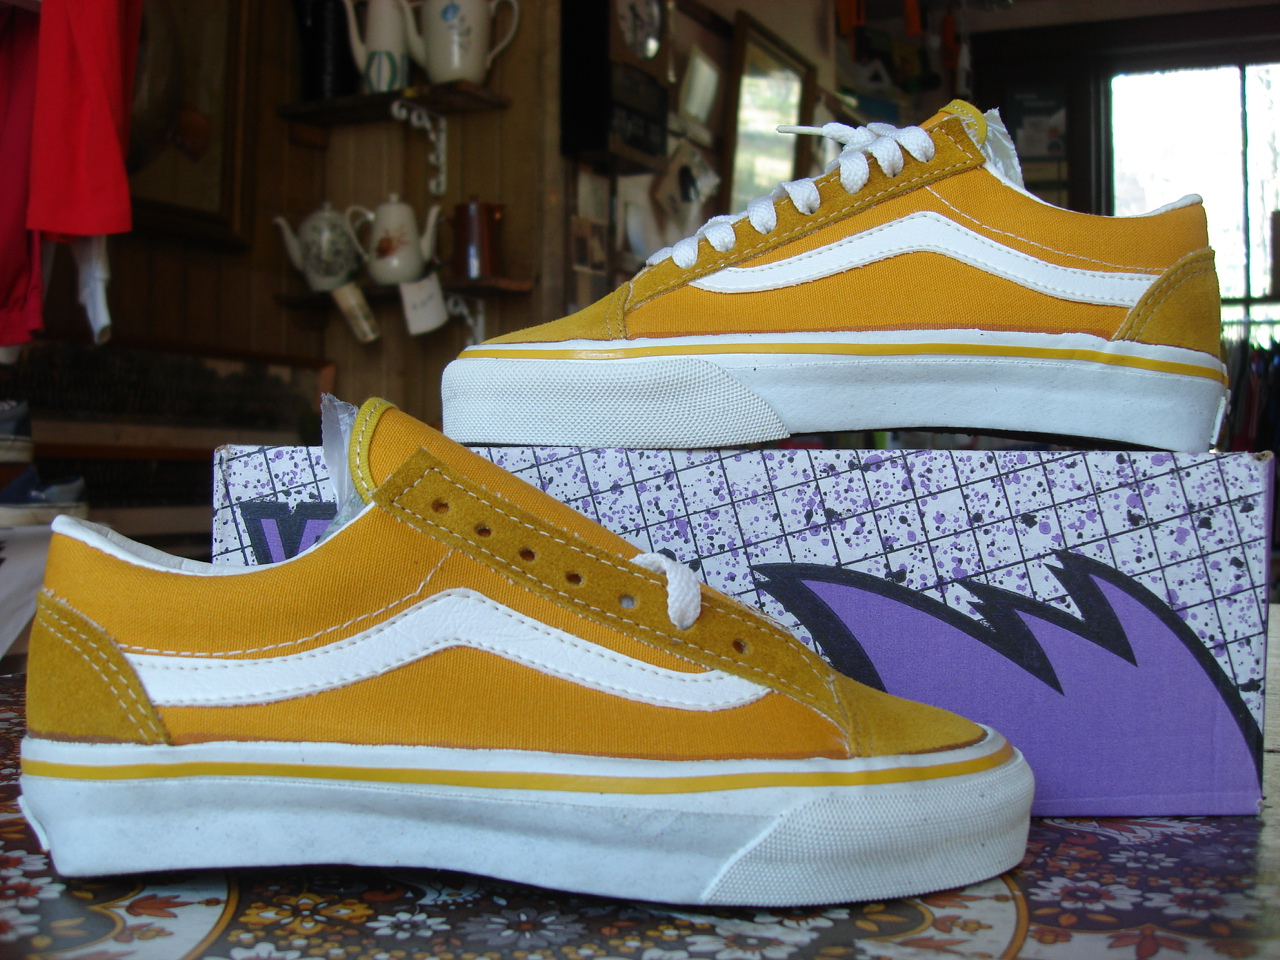 c915426445a vintage vans style  36 old skool mustard suede canvas made in usa circa 1990  new in box. US5 UK4.5